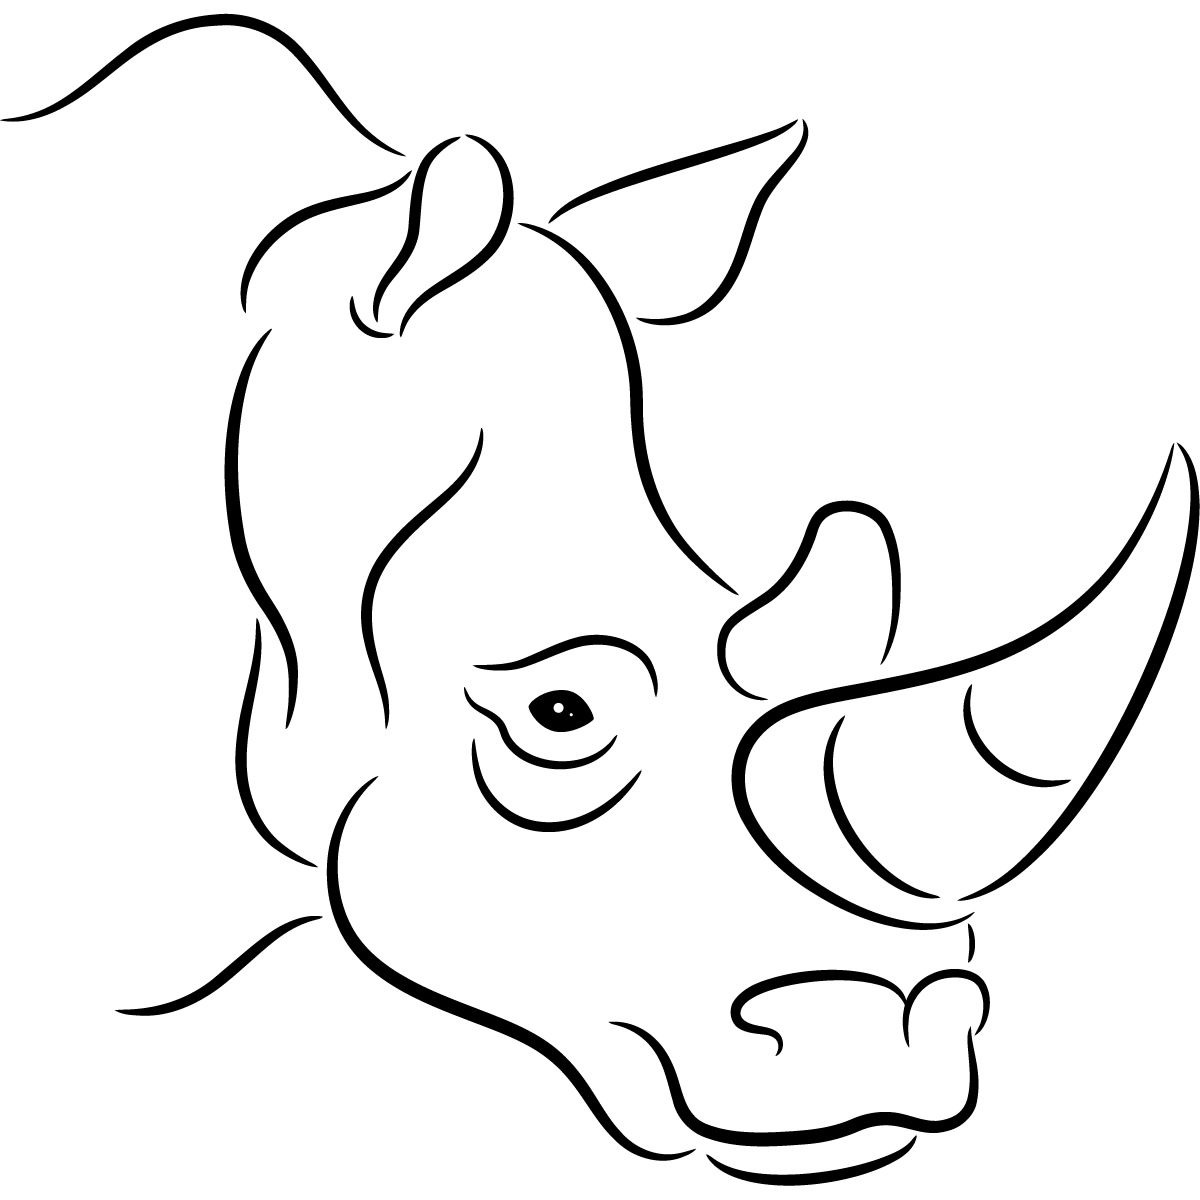 hight resolution of outline of rhino clipart library